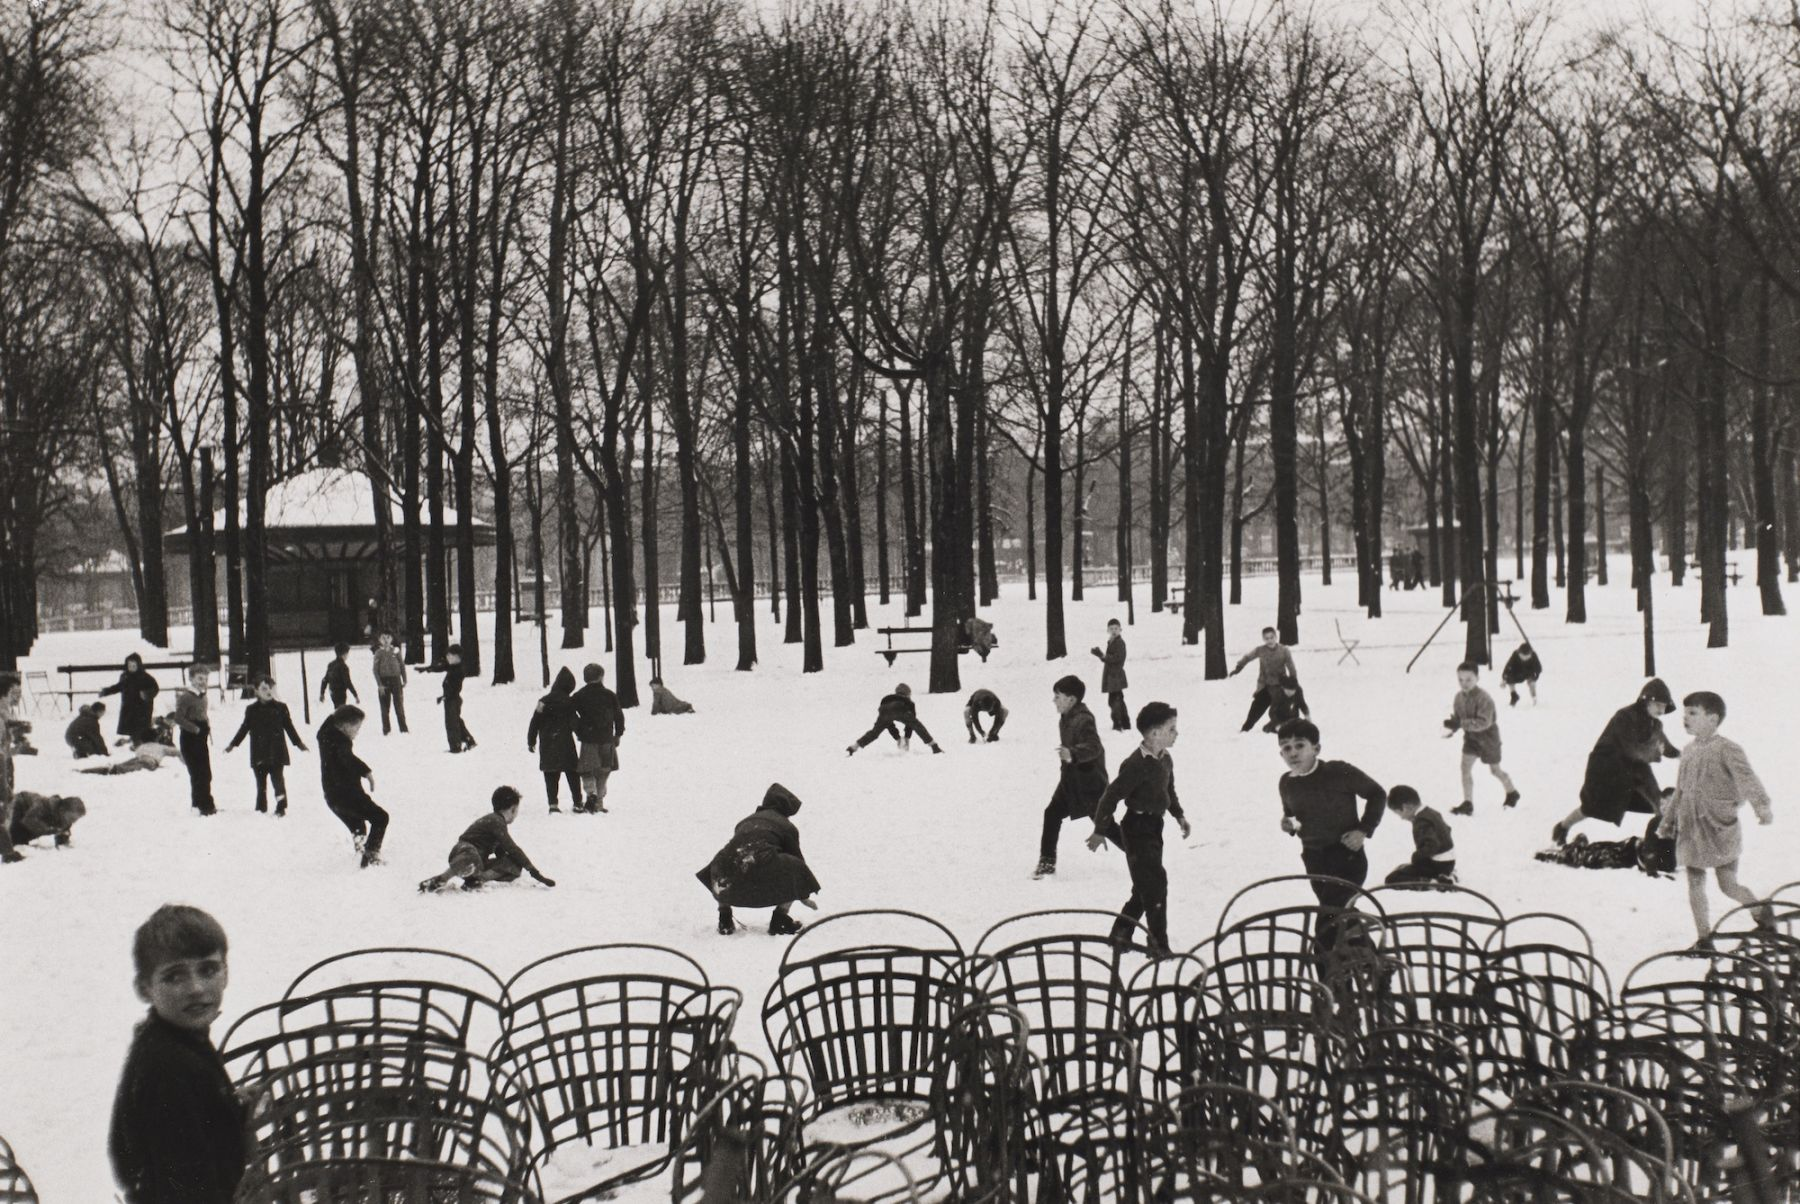 Edouard Boubat (1923-1999)  Enfants dans le Premiere Neige, 1953, printed later  Gelatin silver print  9 1/2h x 14 1/4w in, black and white photography